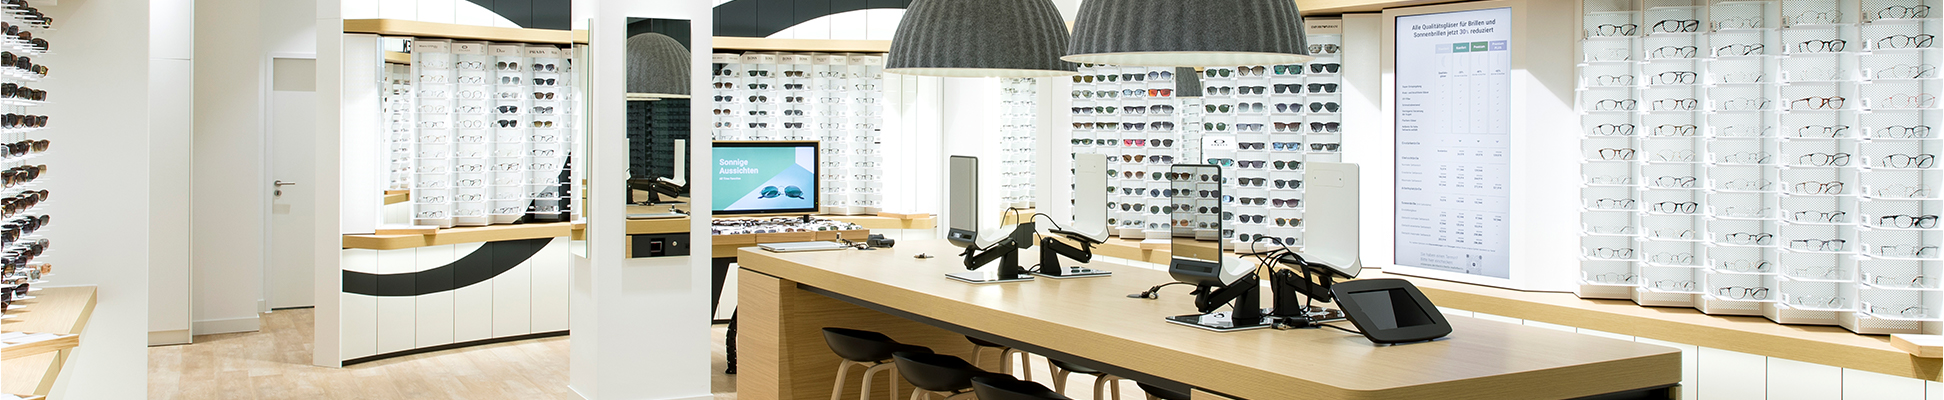 Mister Spex Optiker  Mall of Berlin